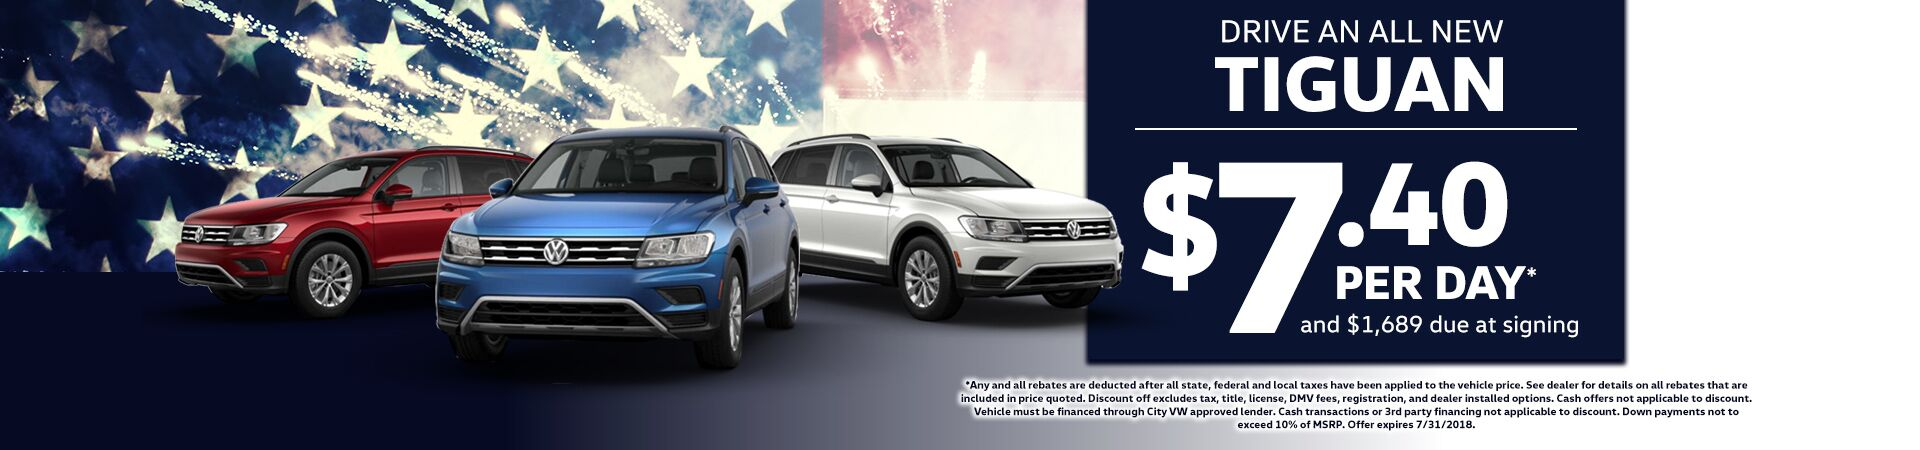 Drive an All New Tiguan